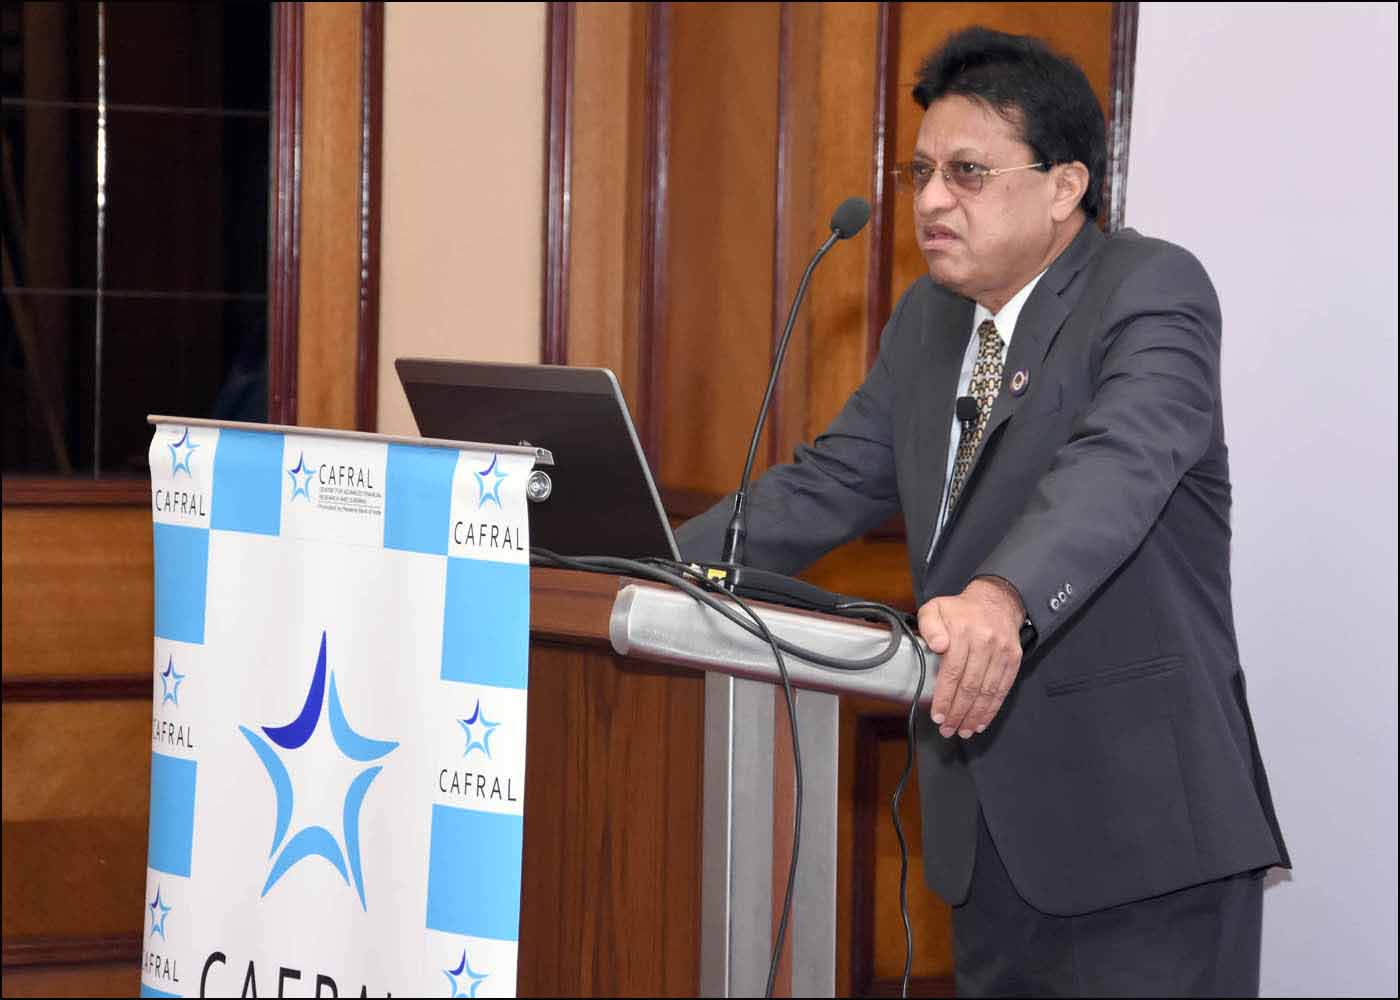 CA. S.B. Zaware, Member, Central Council, ICAI & Chairman, Accounting Standards Board